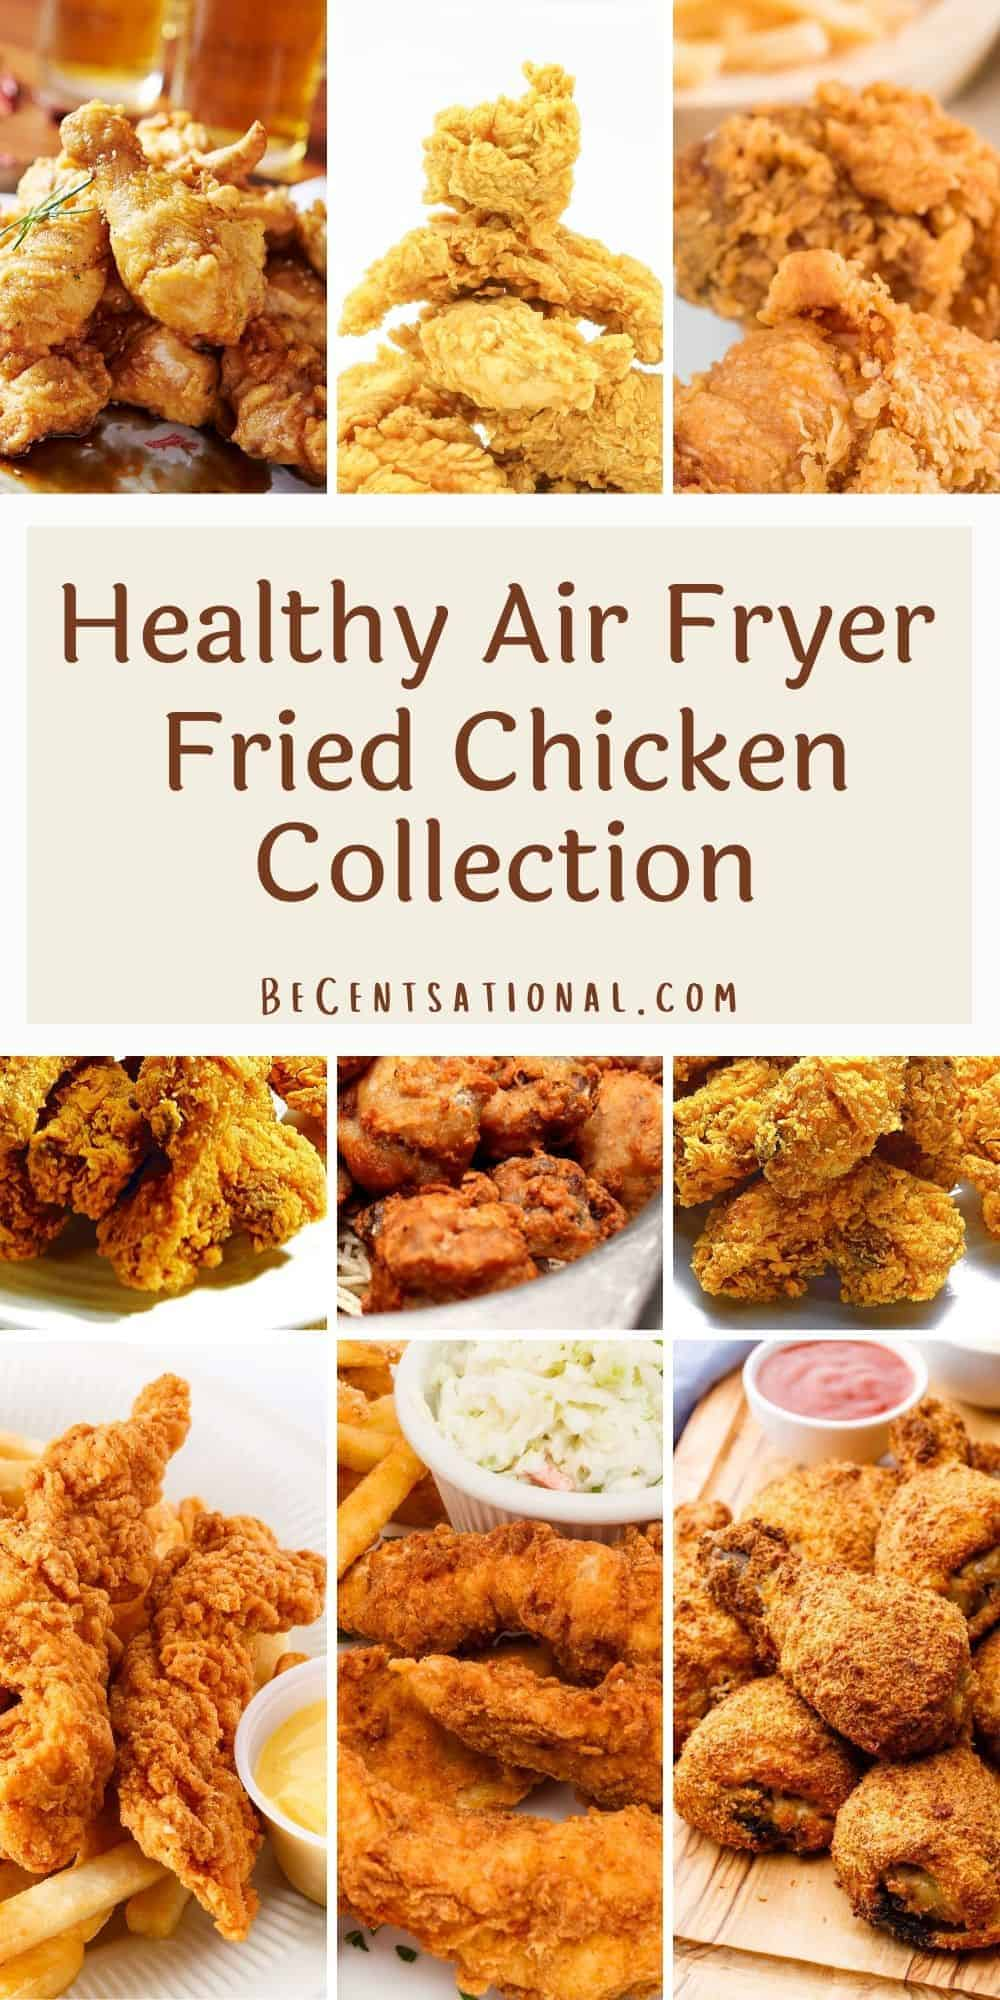 Air Fryer Fried Chicken Recipe Collection